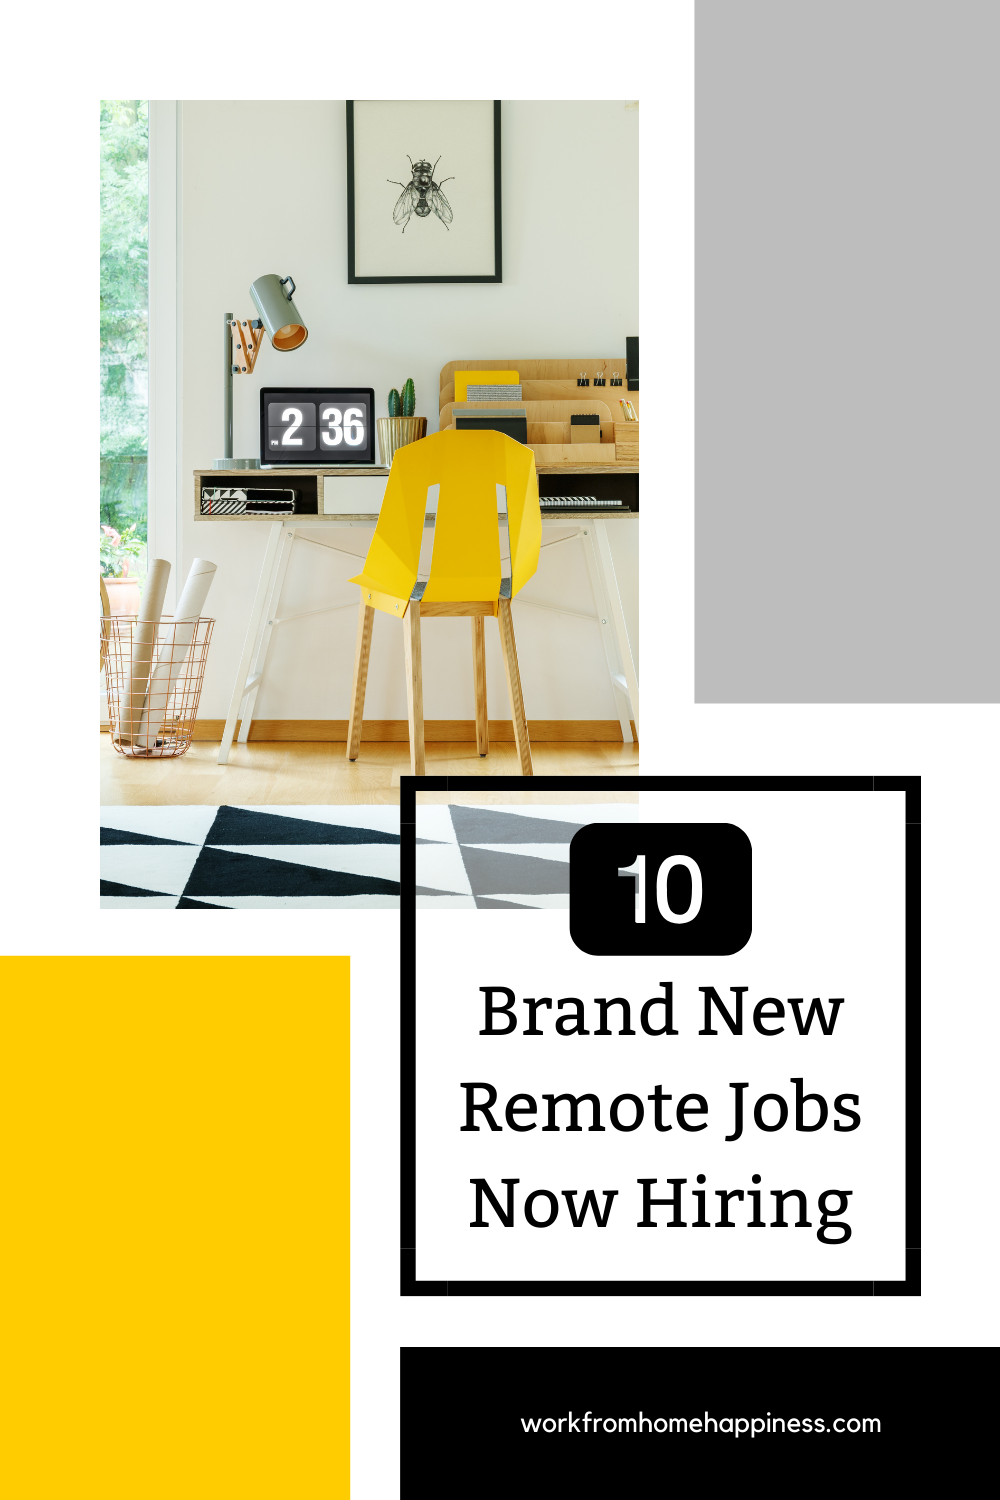 Find Work From Home Jobs with Remote-Friendly Companies